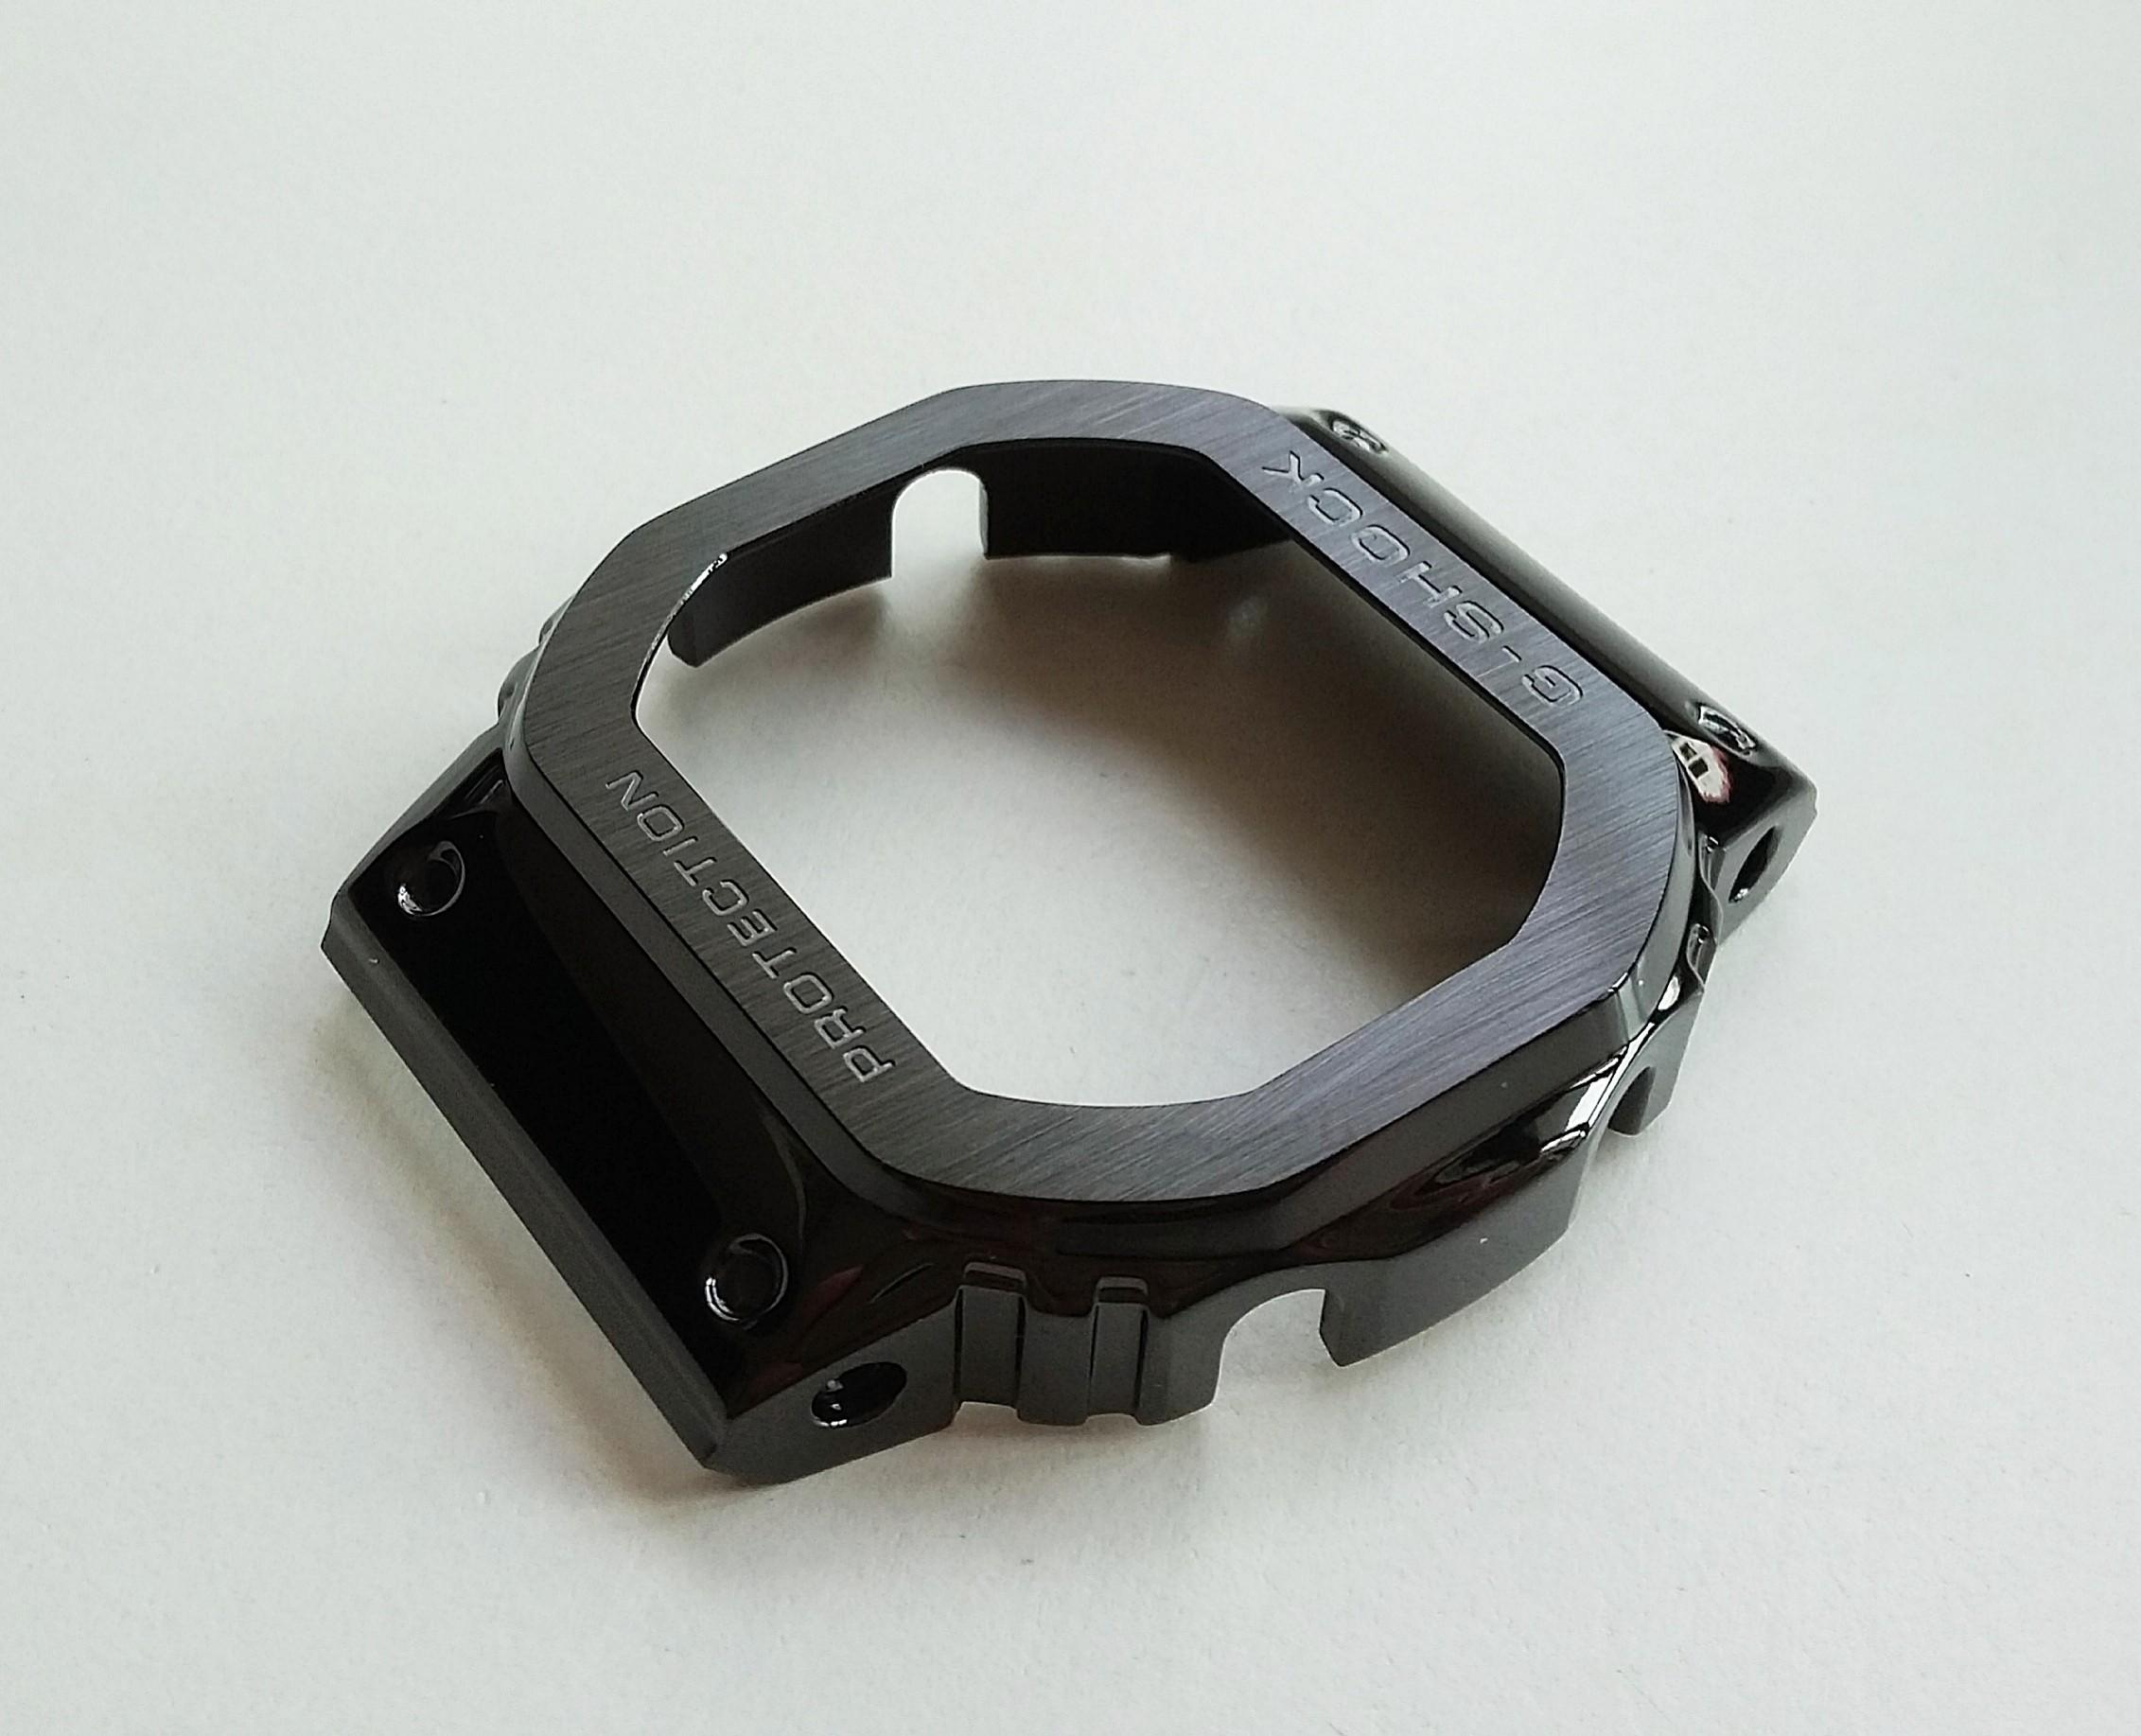 PVD BLACK 316L STAINLESS STEEL PROTECTIVE CASE AND BRACELET (FULL BOX) FOR G-SHOCK  CASIO DW5600 GW-M5610 GLX5600 GW-5000 5035  DW-5000 (PRICE INCLUDE M0DIFICATION)